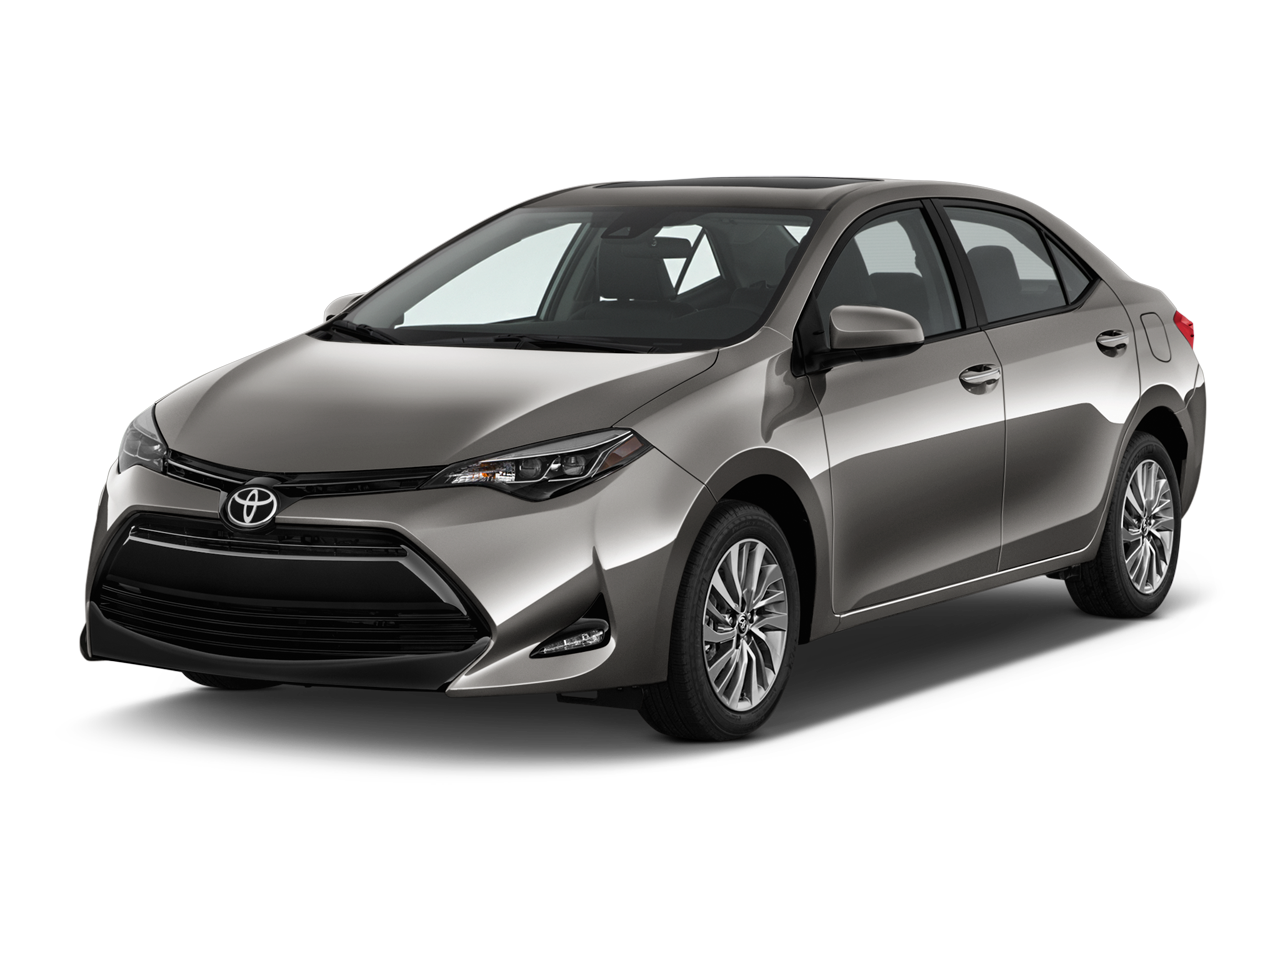 Toyota Corolla Repair Manual: Entire combination meter does not operate